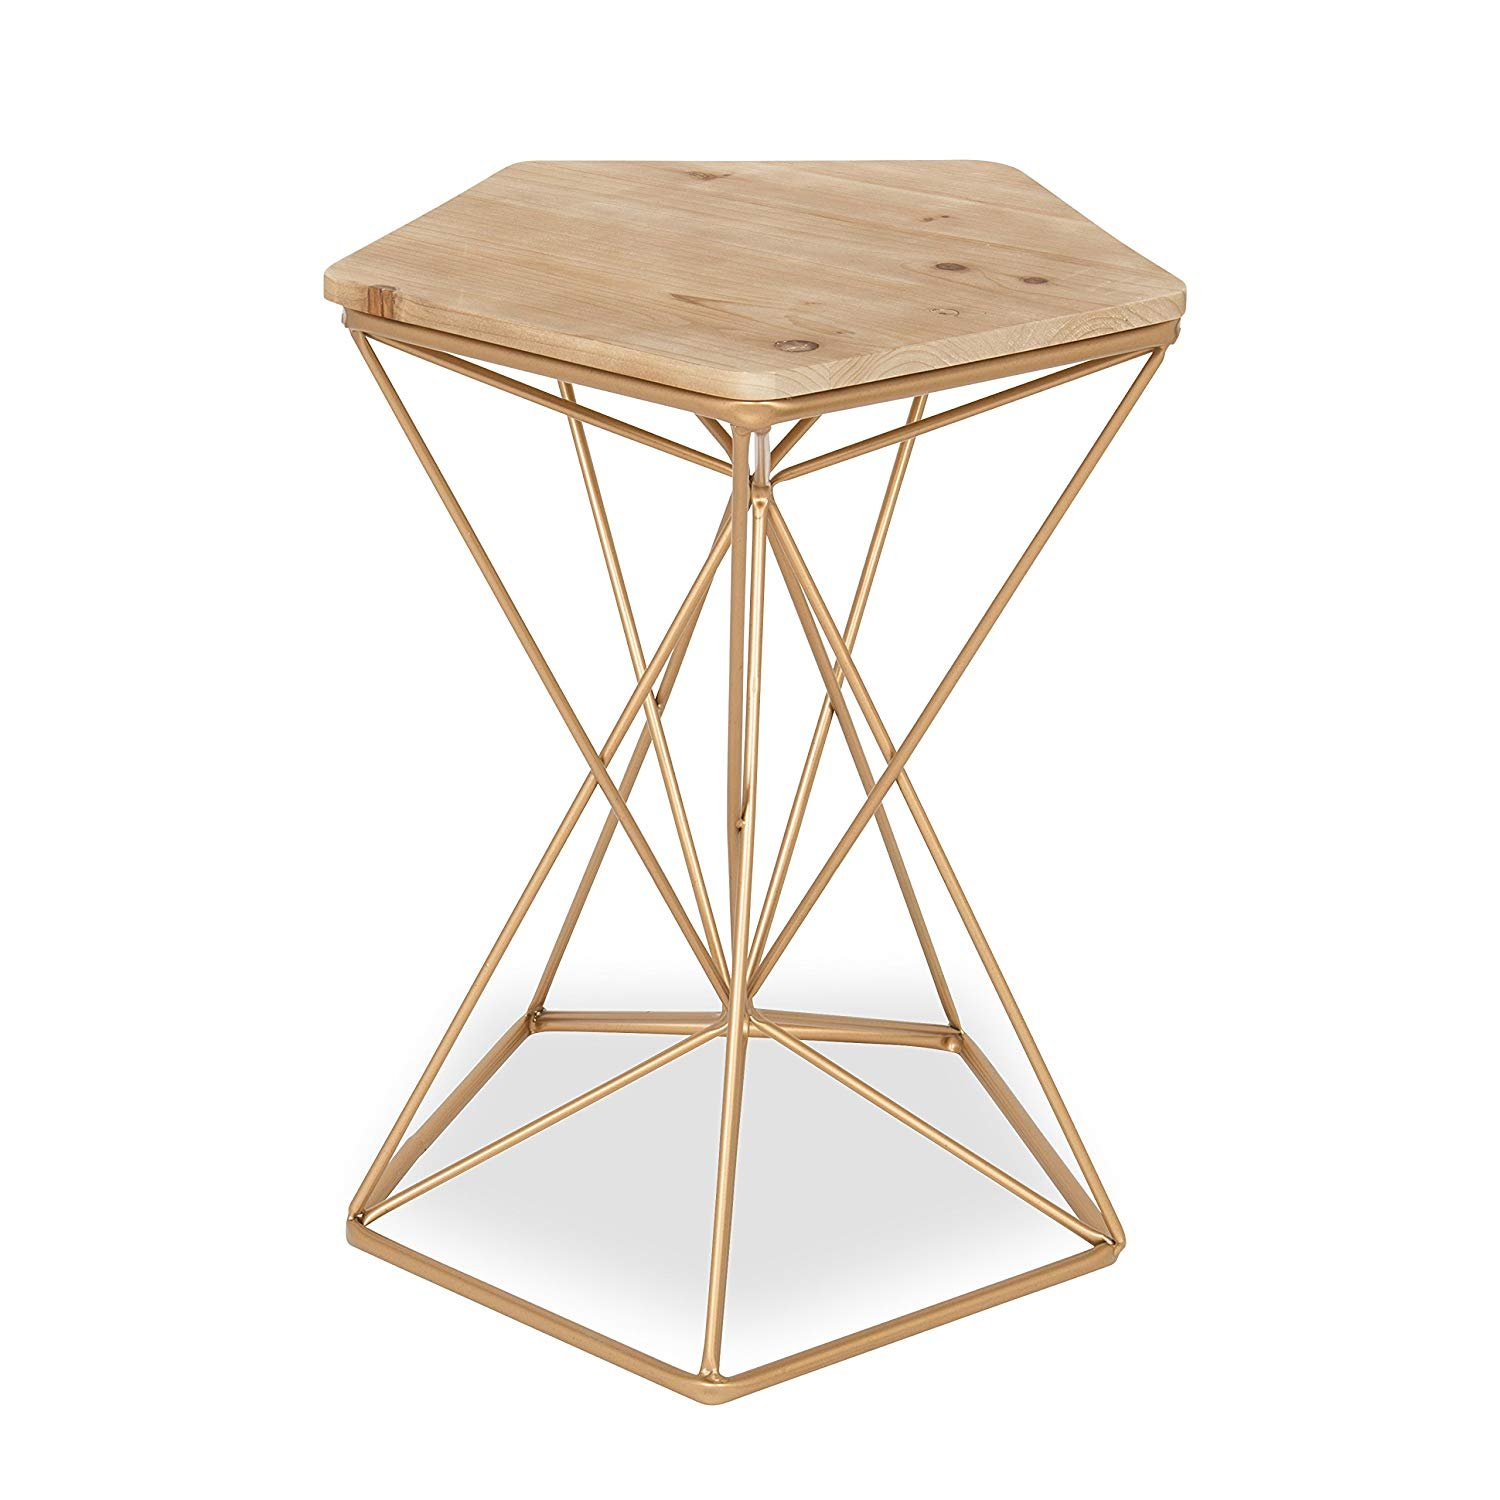 kate and laurel ulane metal side accent table with natural wood medium top rose gold ikea narrow end mosaic patio cream colored tables mainstays coffee unique cabinets very small